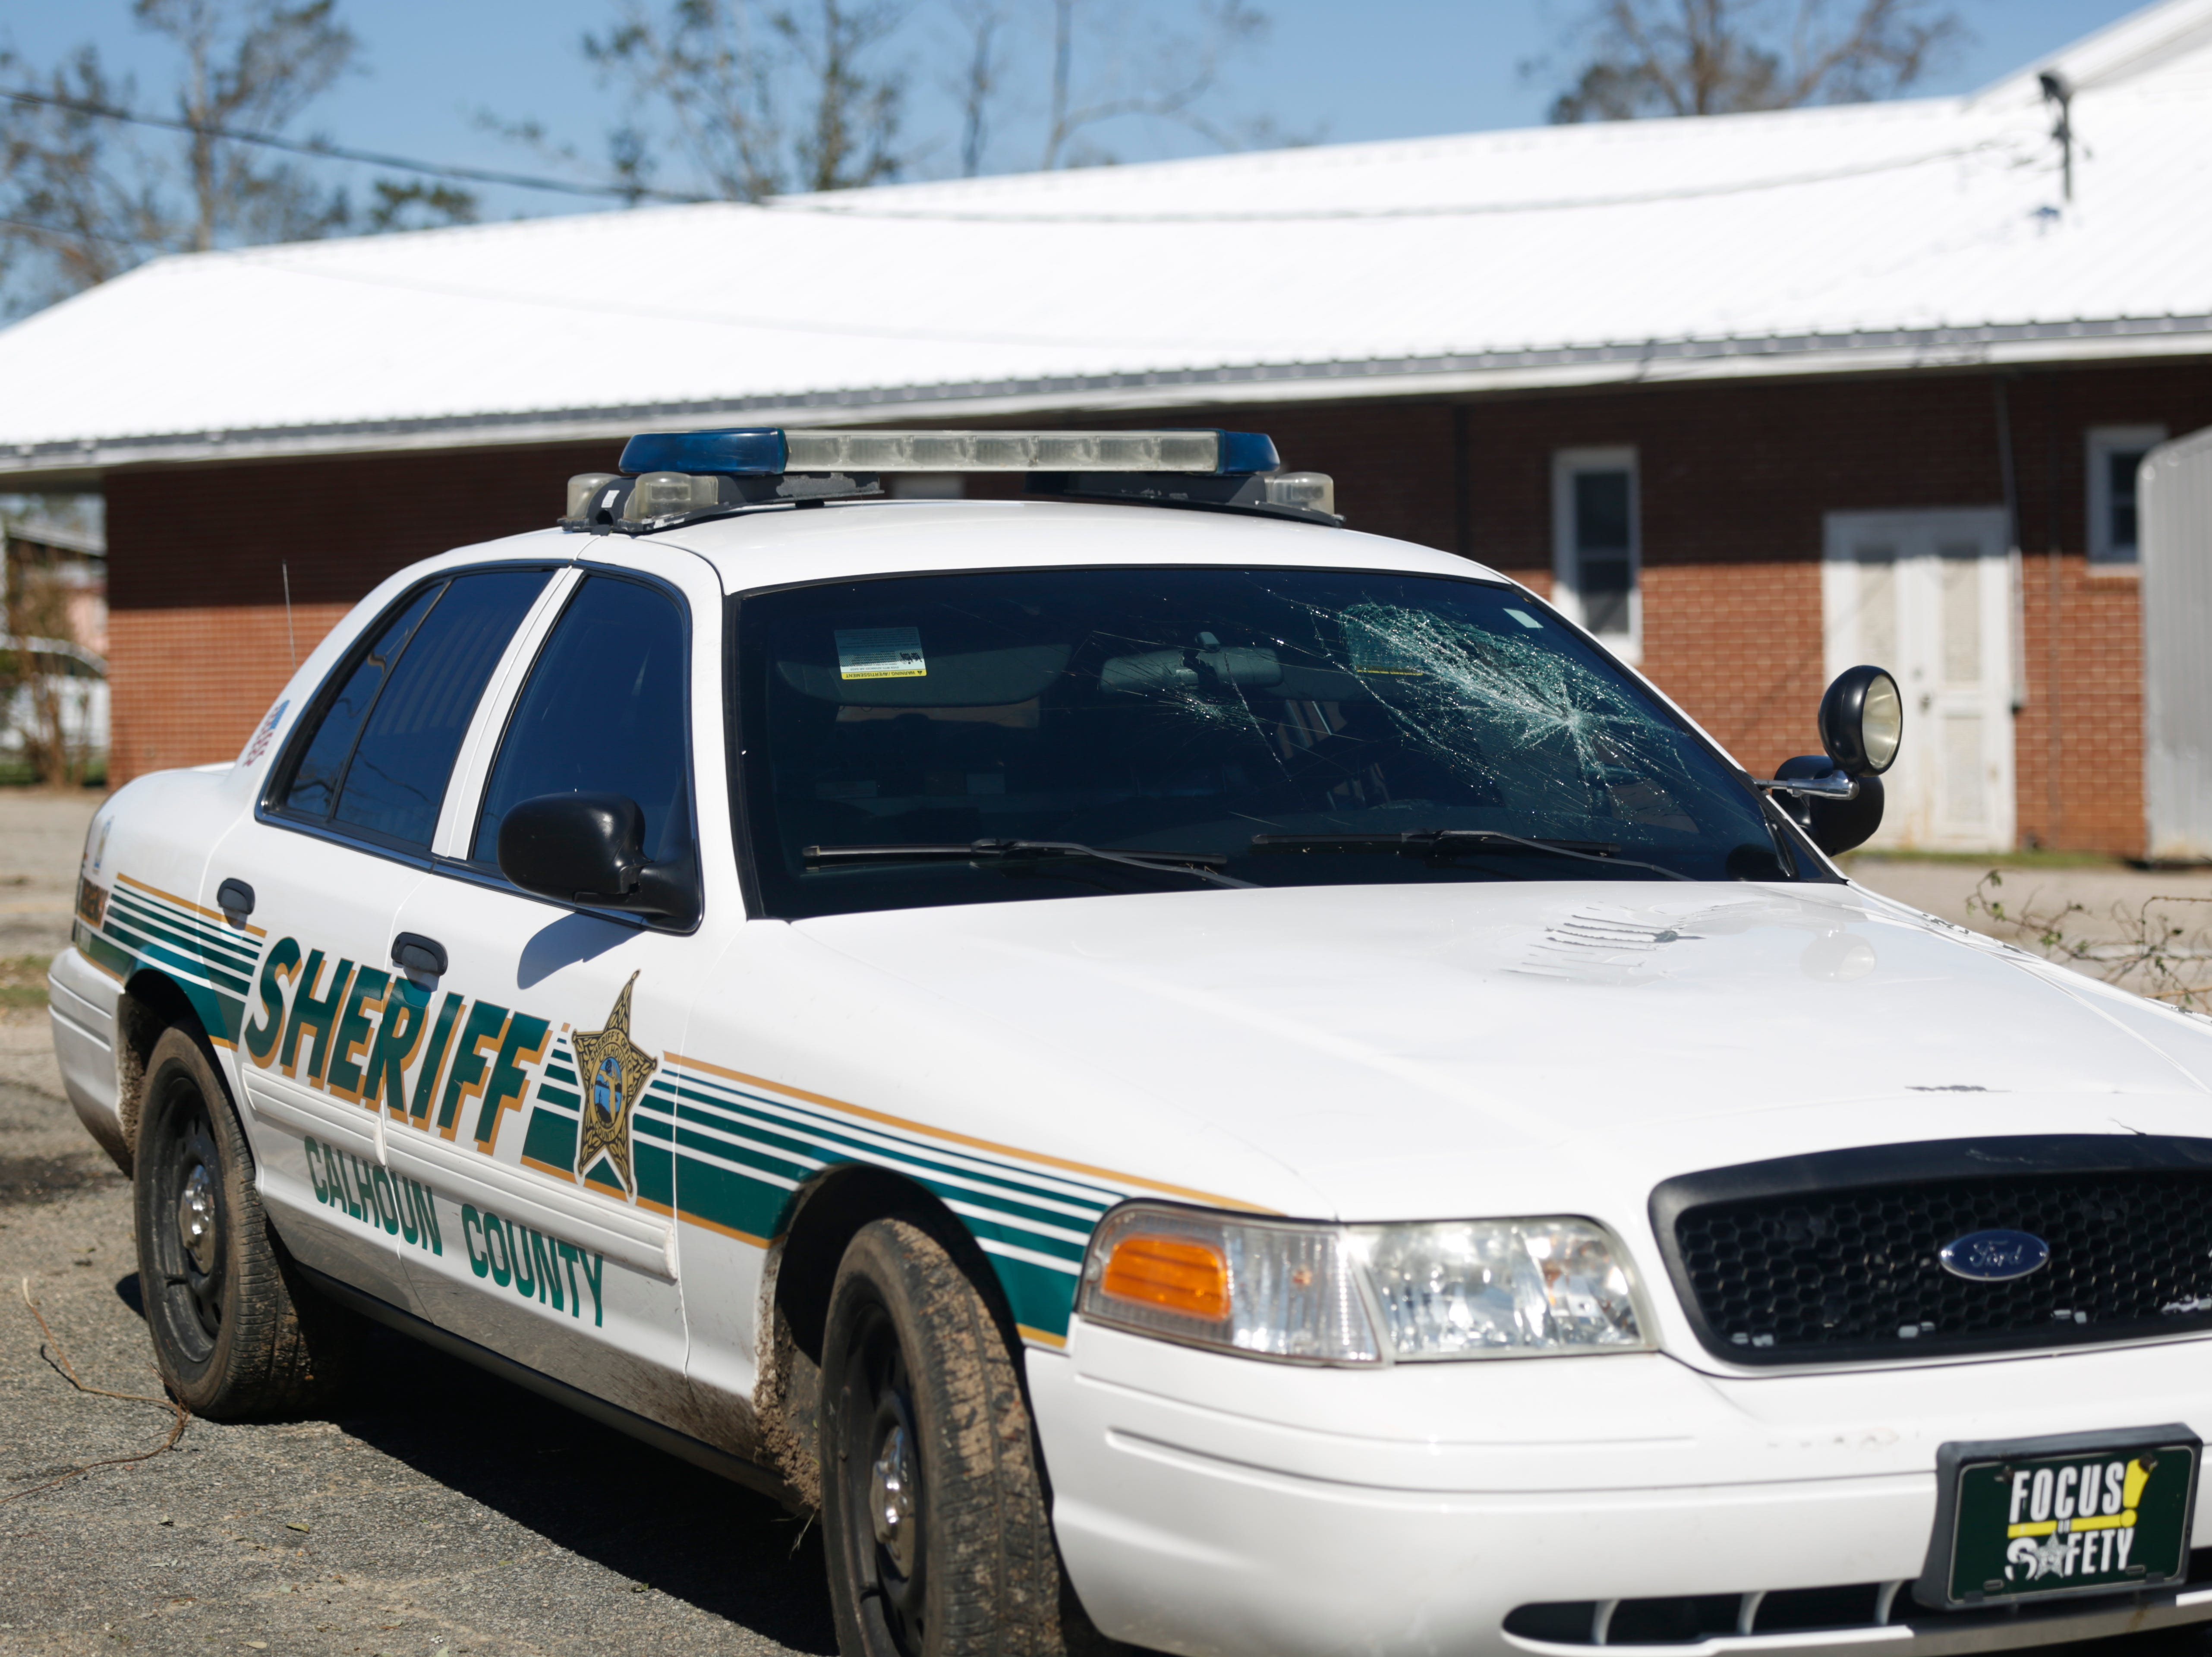 A Calhoun County Sheriff's car is damaged in Blountstown, Fla. in the aftermath of Hurricane Michael Friday, Oct. 12, 2018.